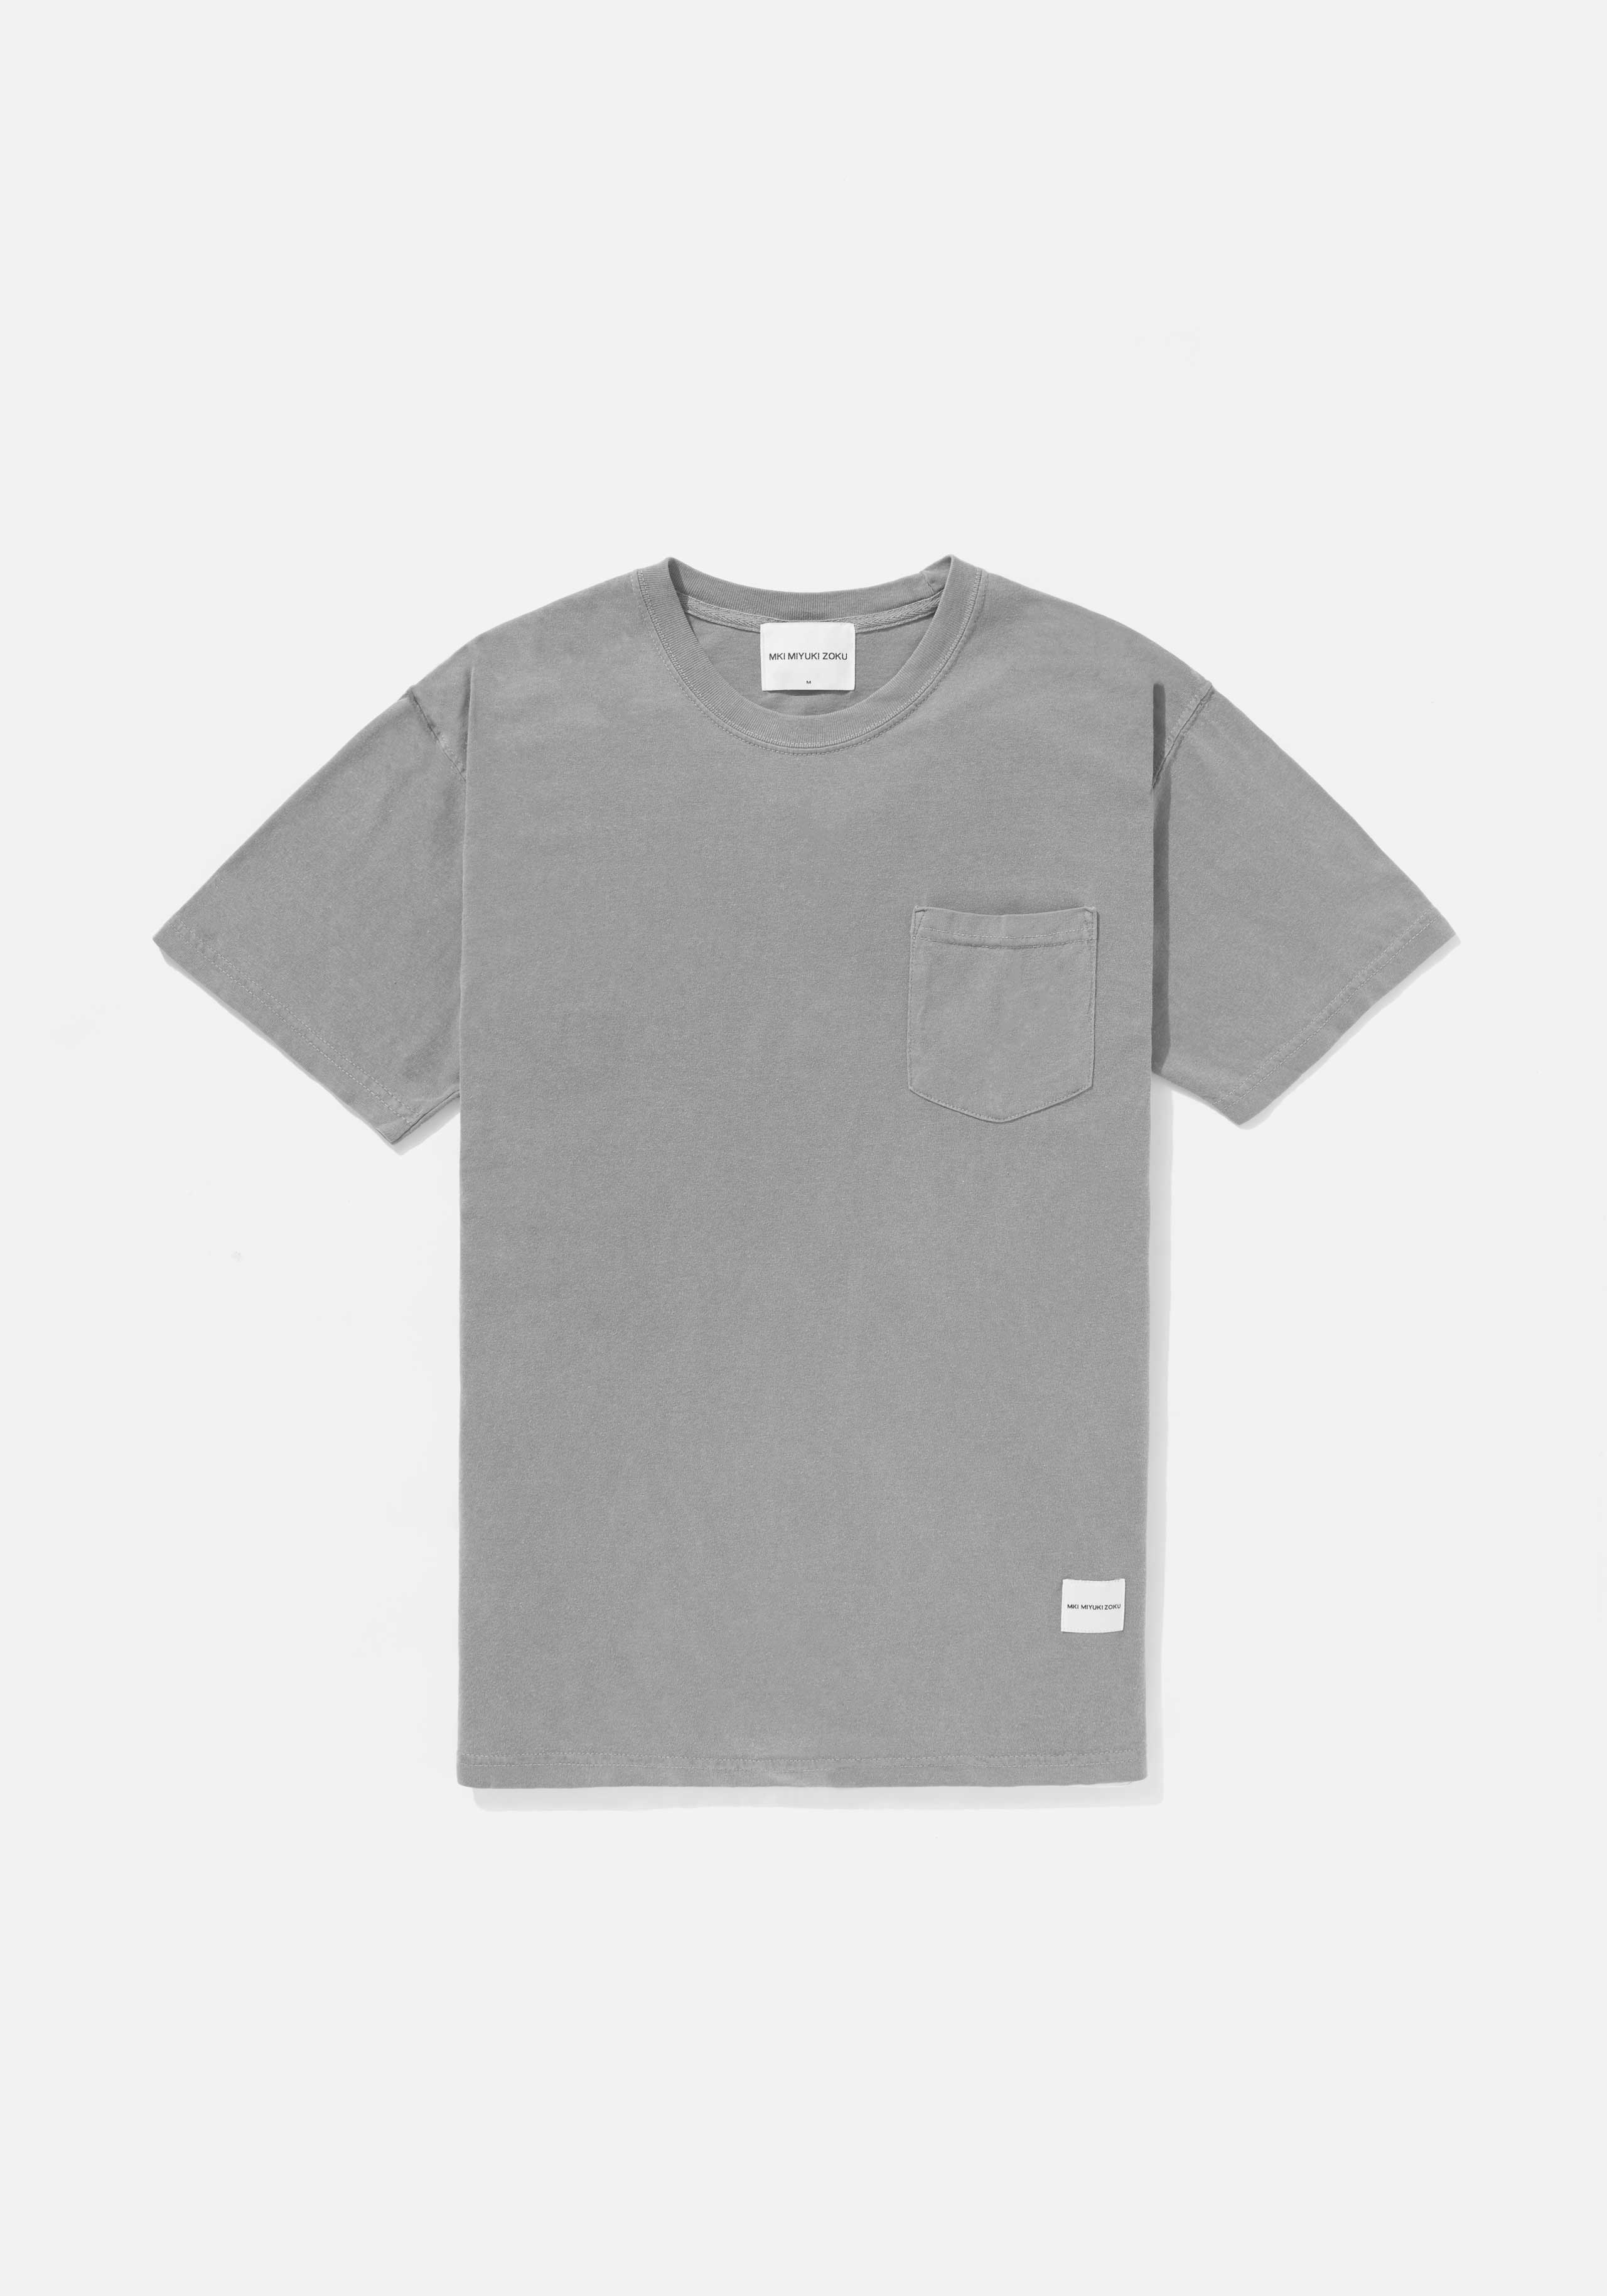 mki pigment dyed pocket tee 1